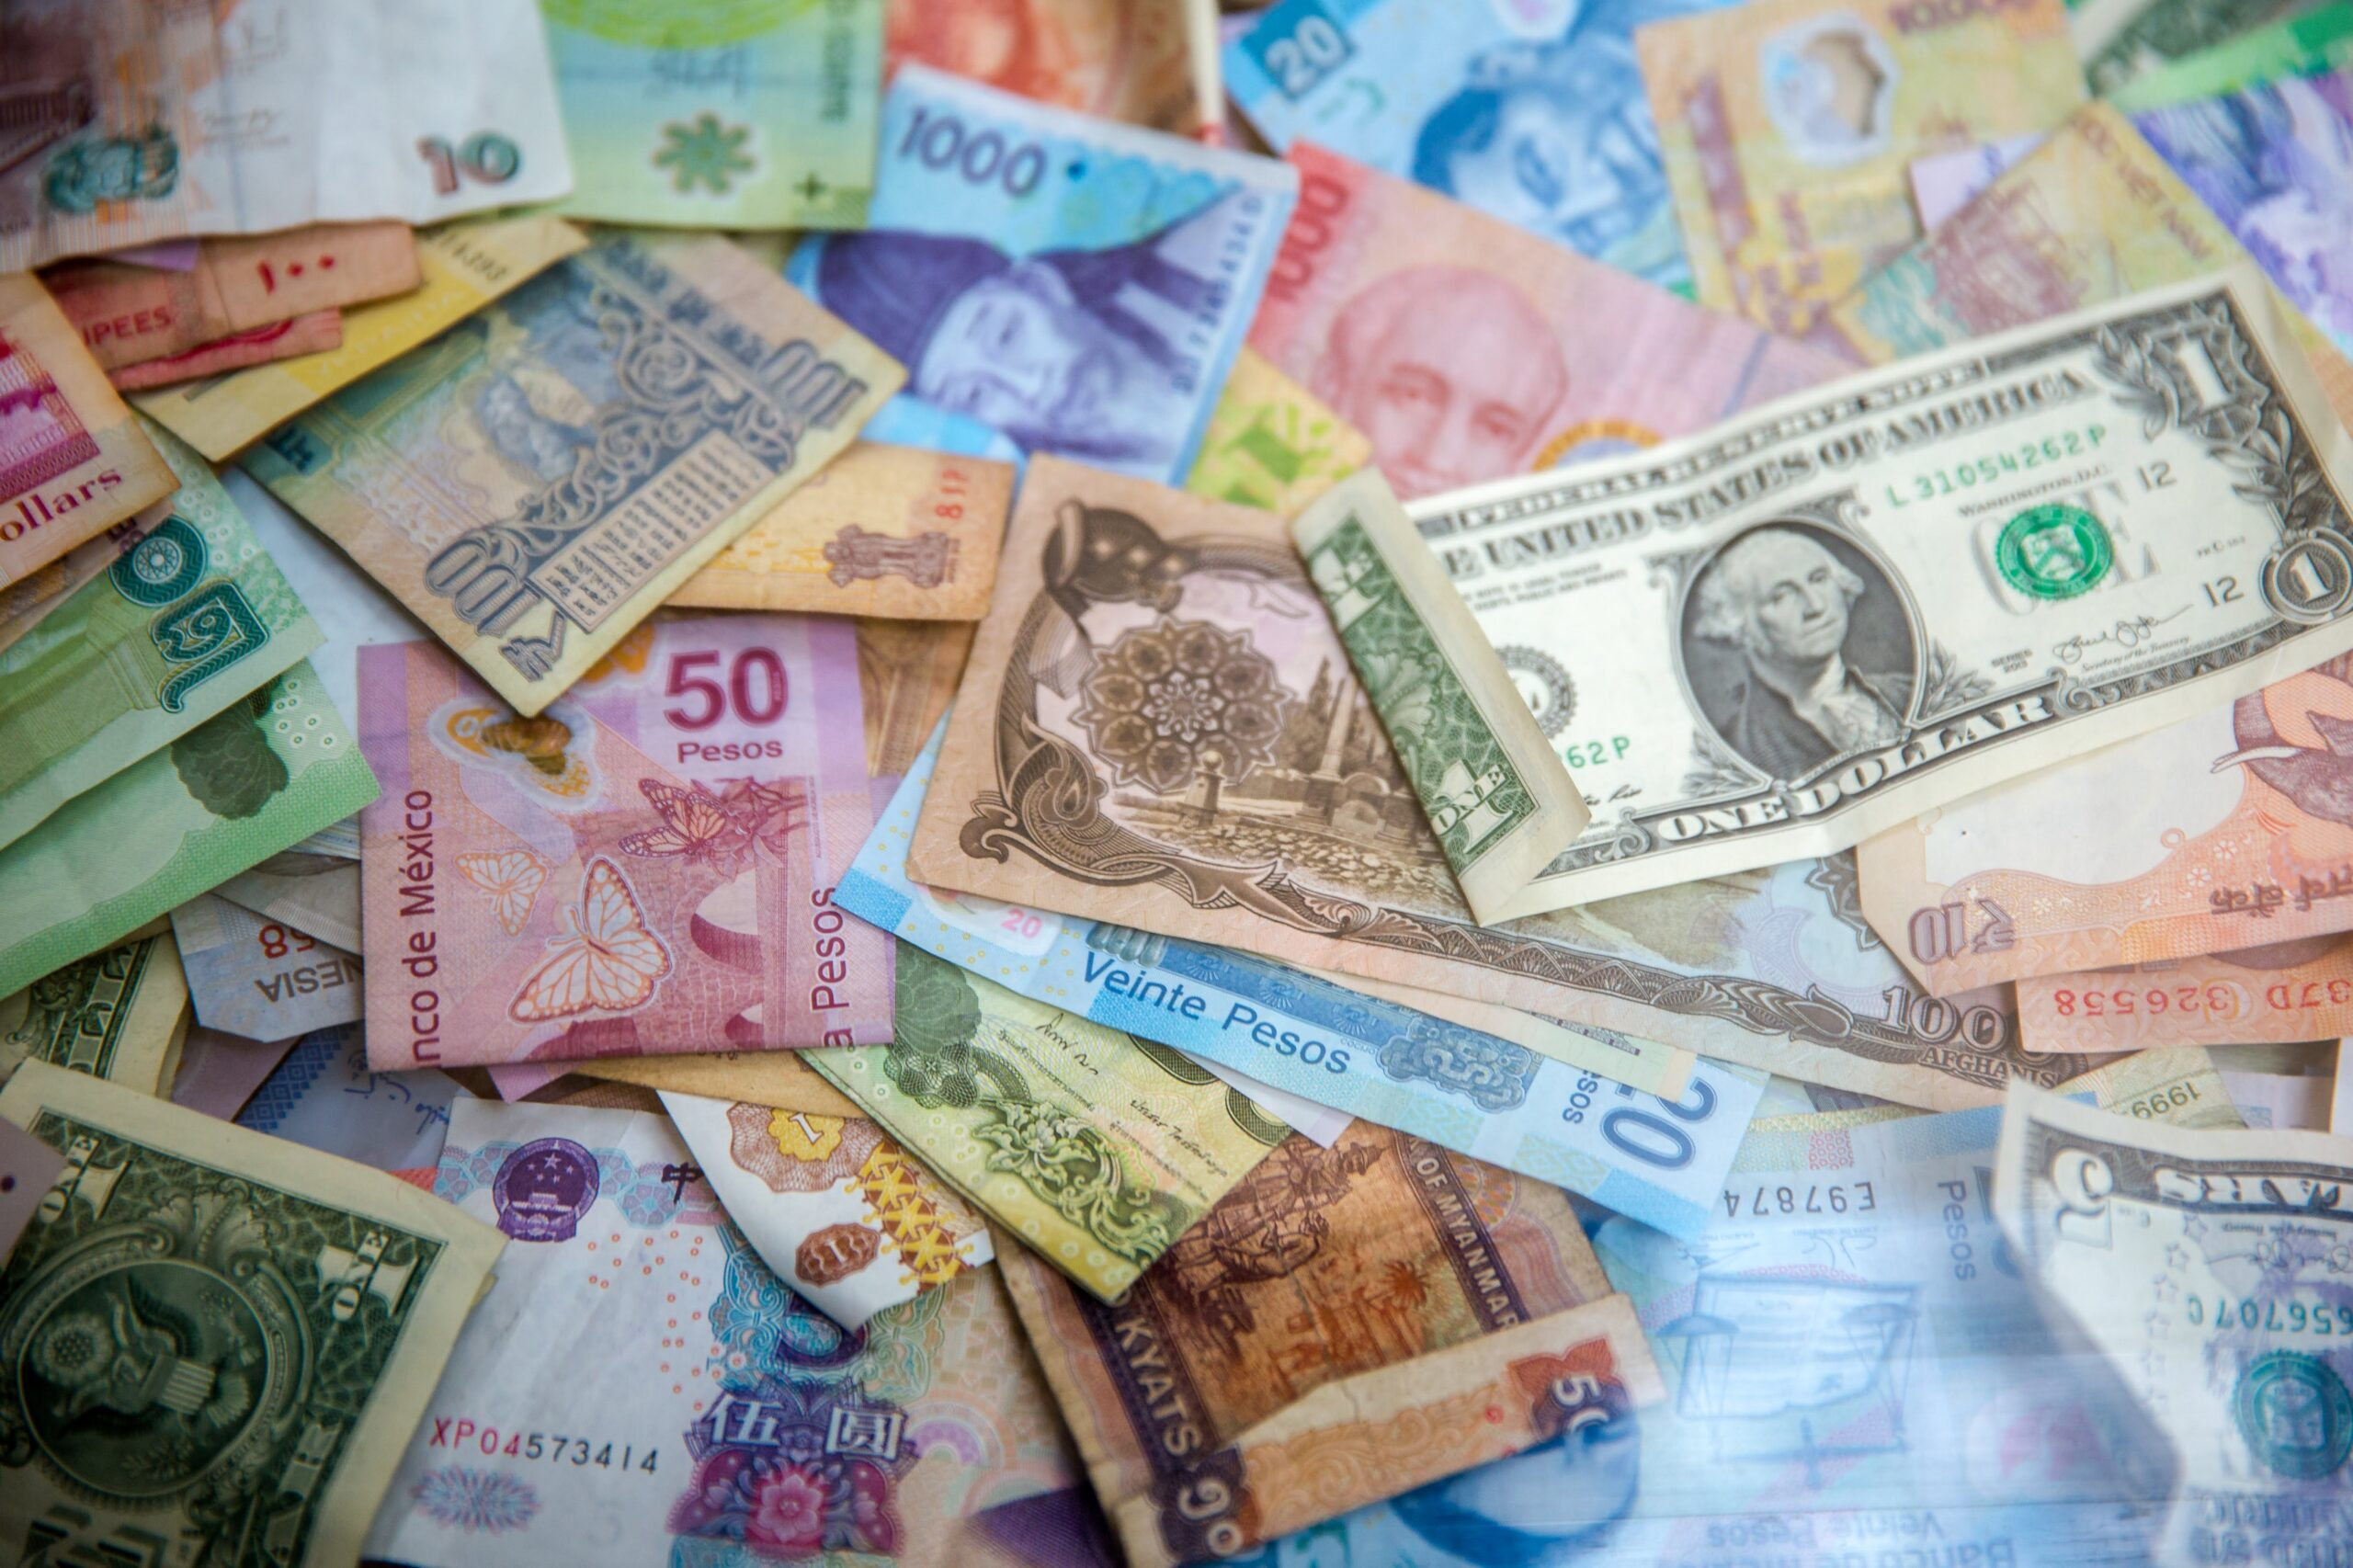 How Do Blind People Know Which Banknote To Use?